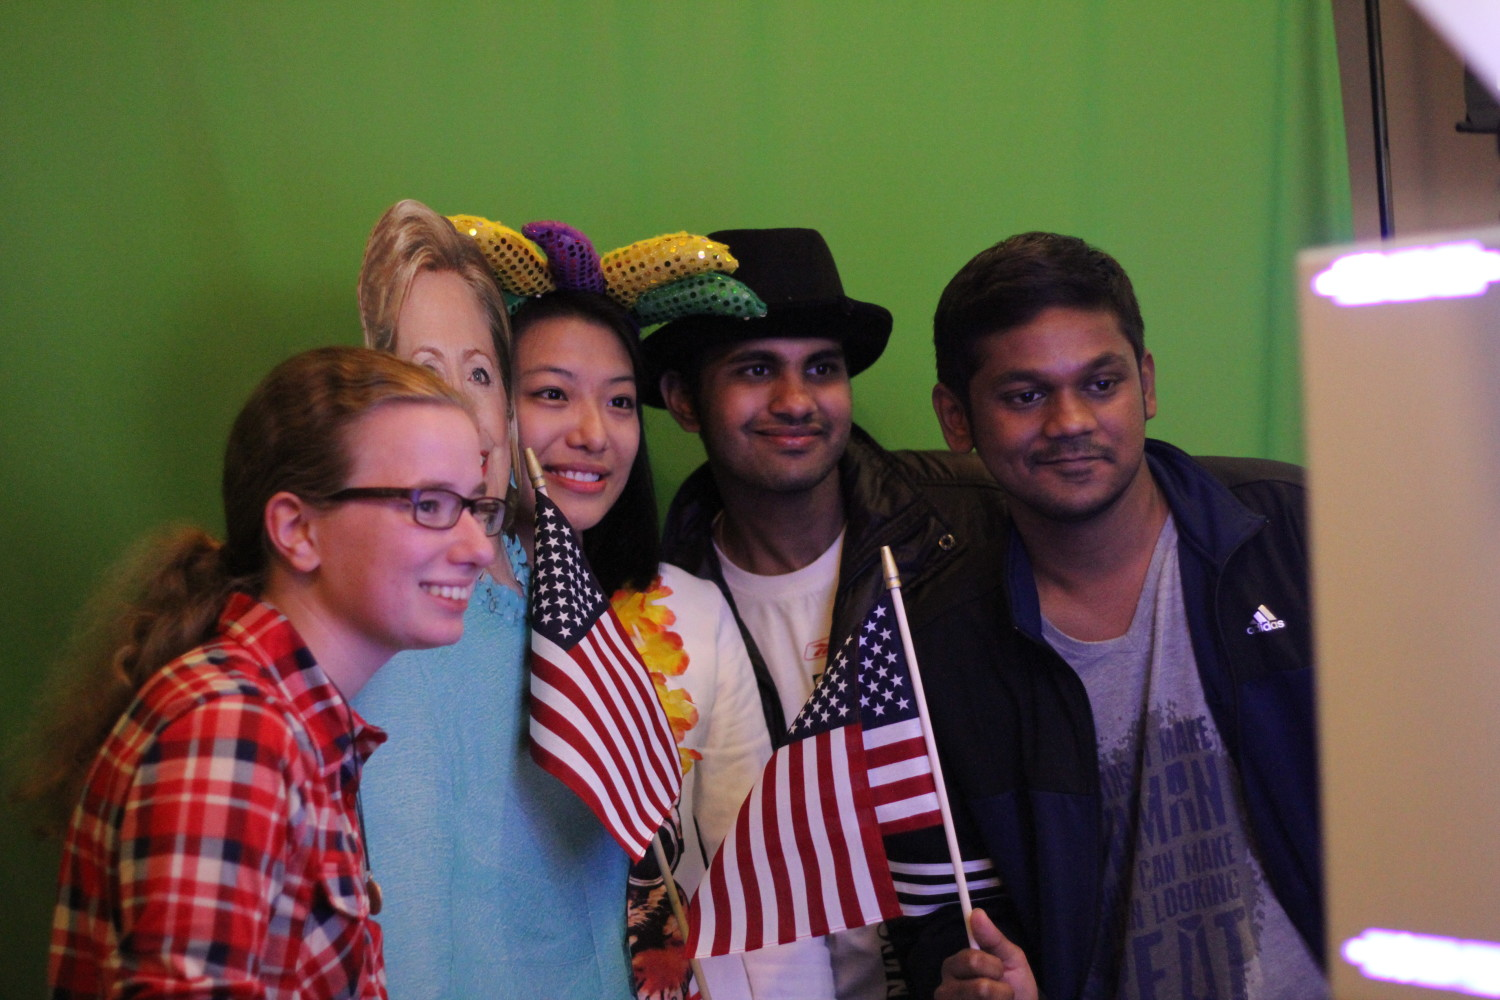 Political science sophomore Madeleine Keith (left), marketing graduate student Haiyun Chen, business analytics graduate student Ganesh Kumar and management science graduate student Naman Bader pose with a Hillary Clinton cutout at the election watch party.